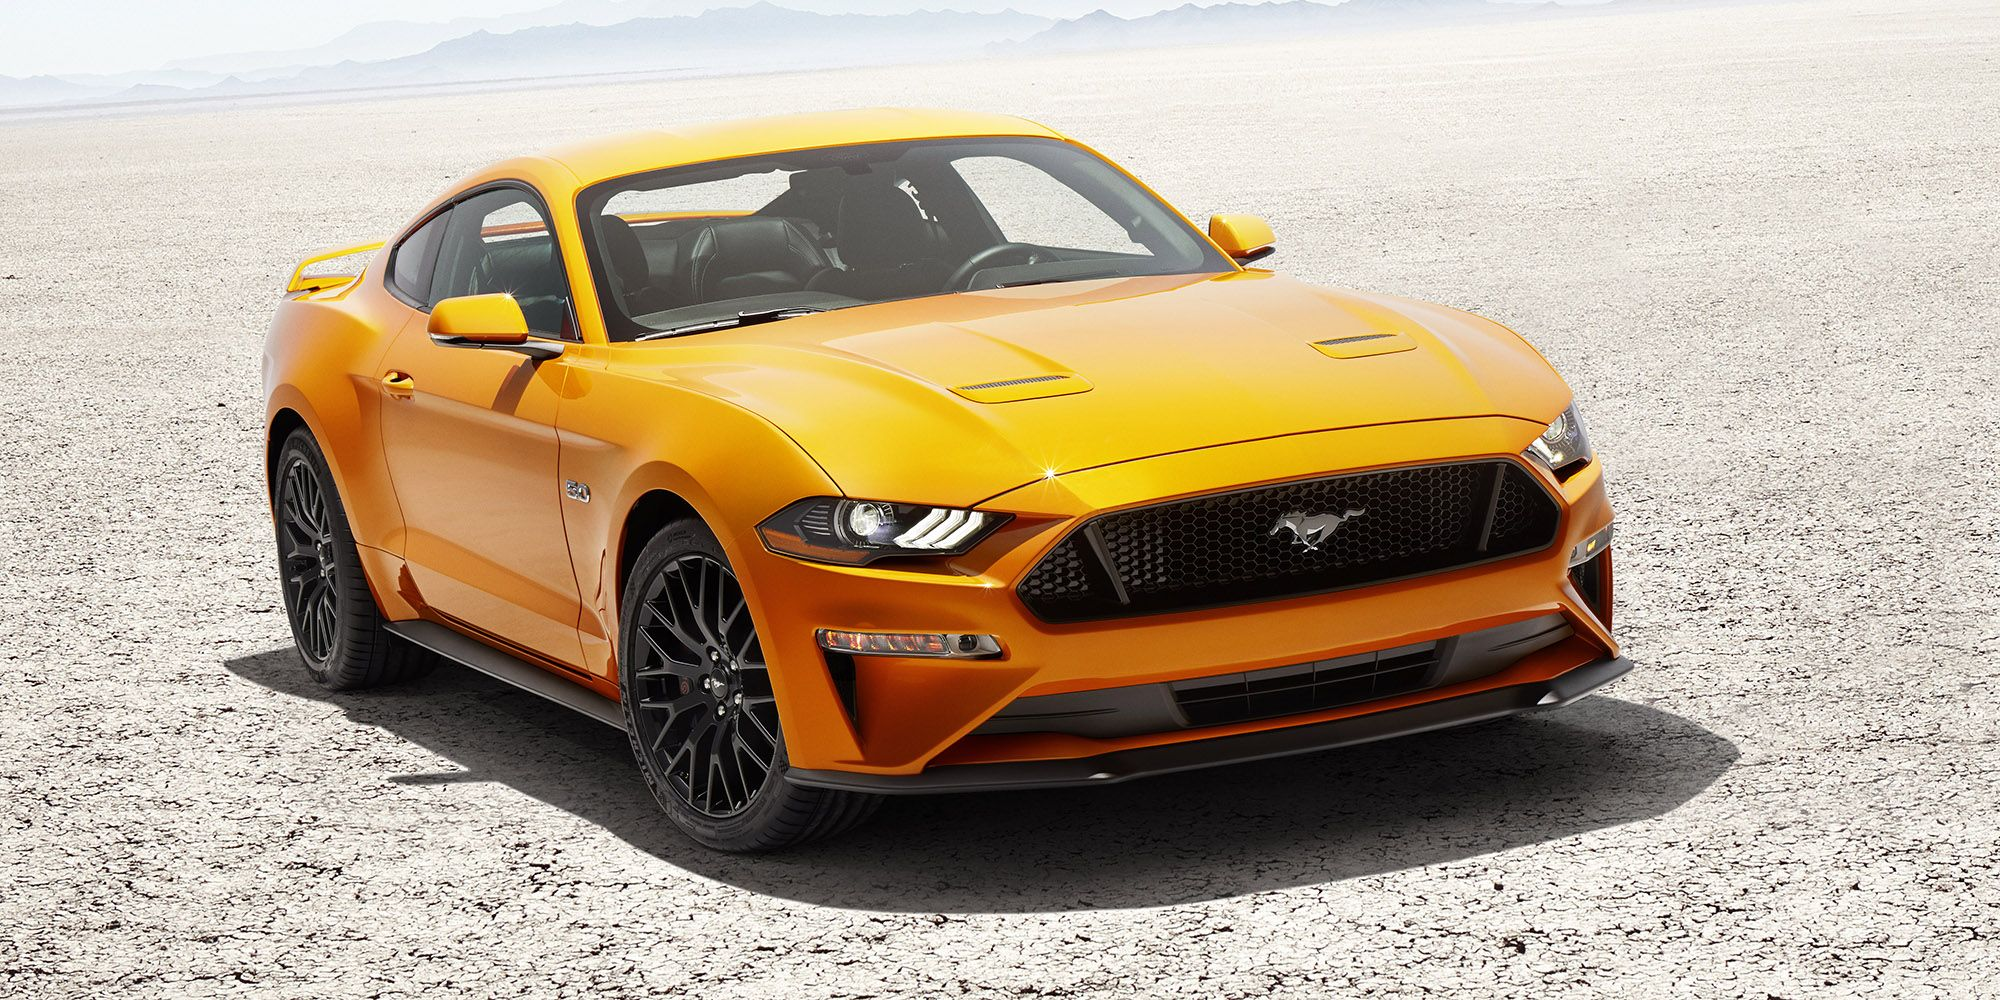 2018 ford mustang price starts at 25585 msrp for mustang ecoboost gt